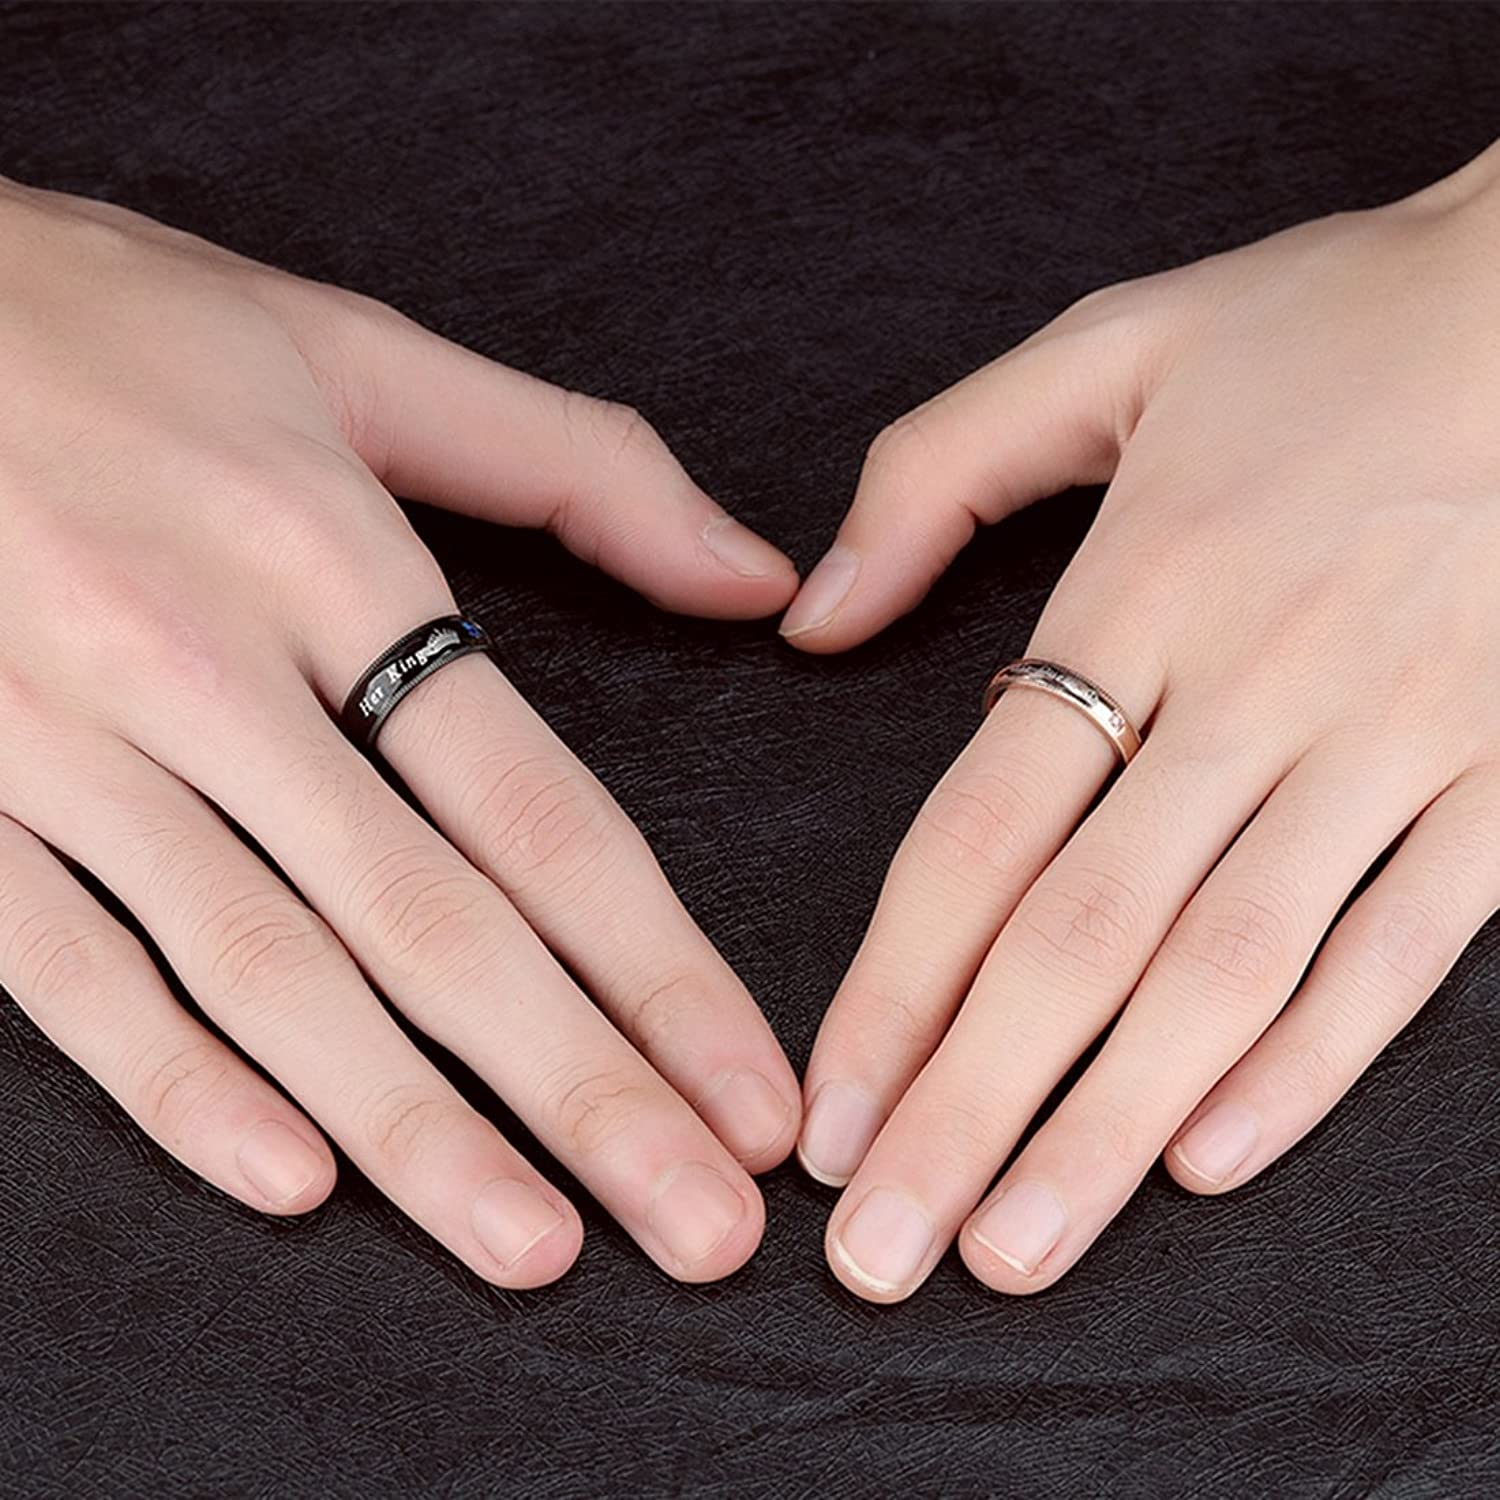 Amazon.com: OBSEDE His Queen Her King Ring Stainless Steel Rings for ...